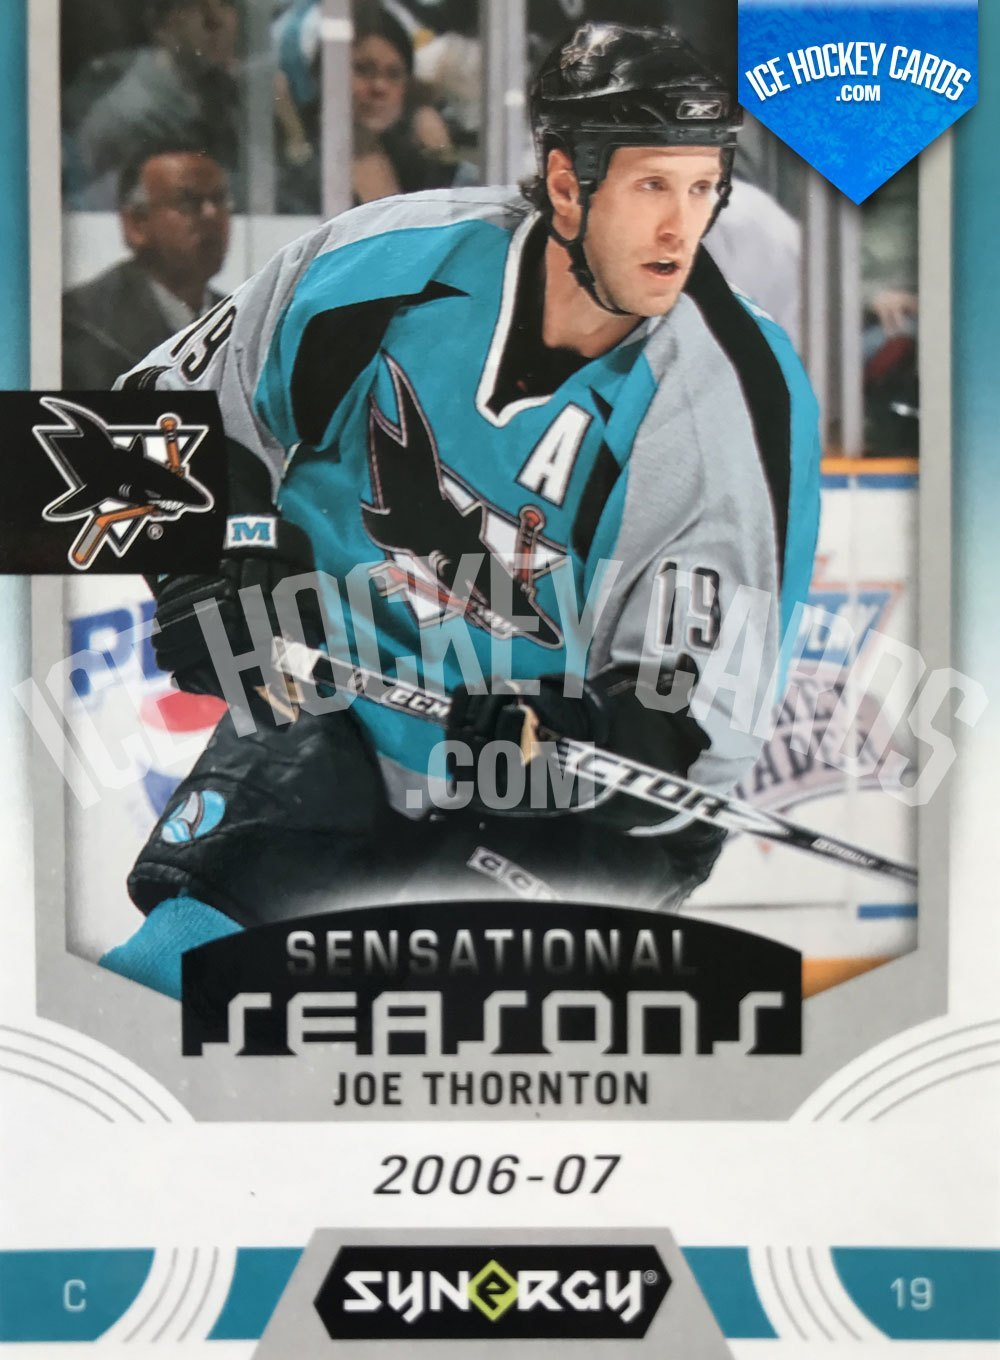 Upper Deck - Synergy 19-20 - Joe Thornton Sensational Seasons 2006-07